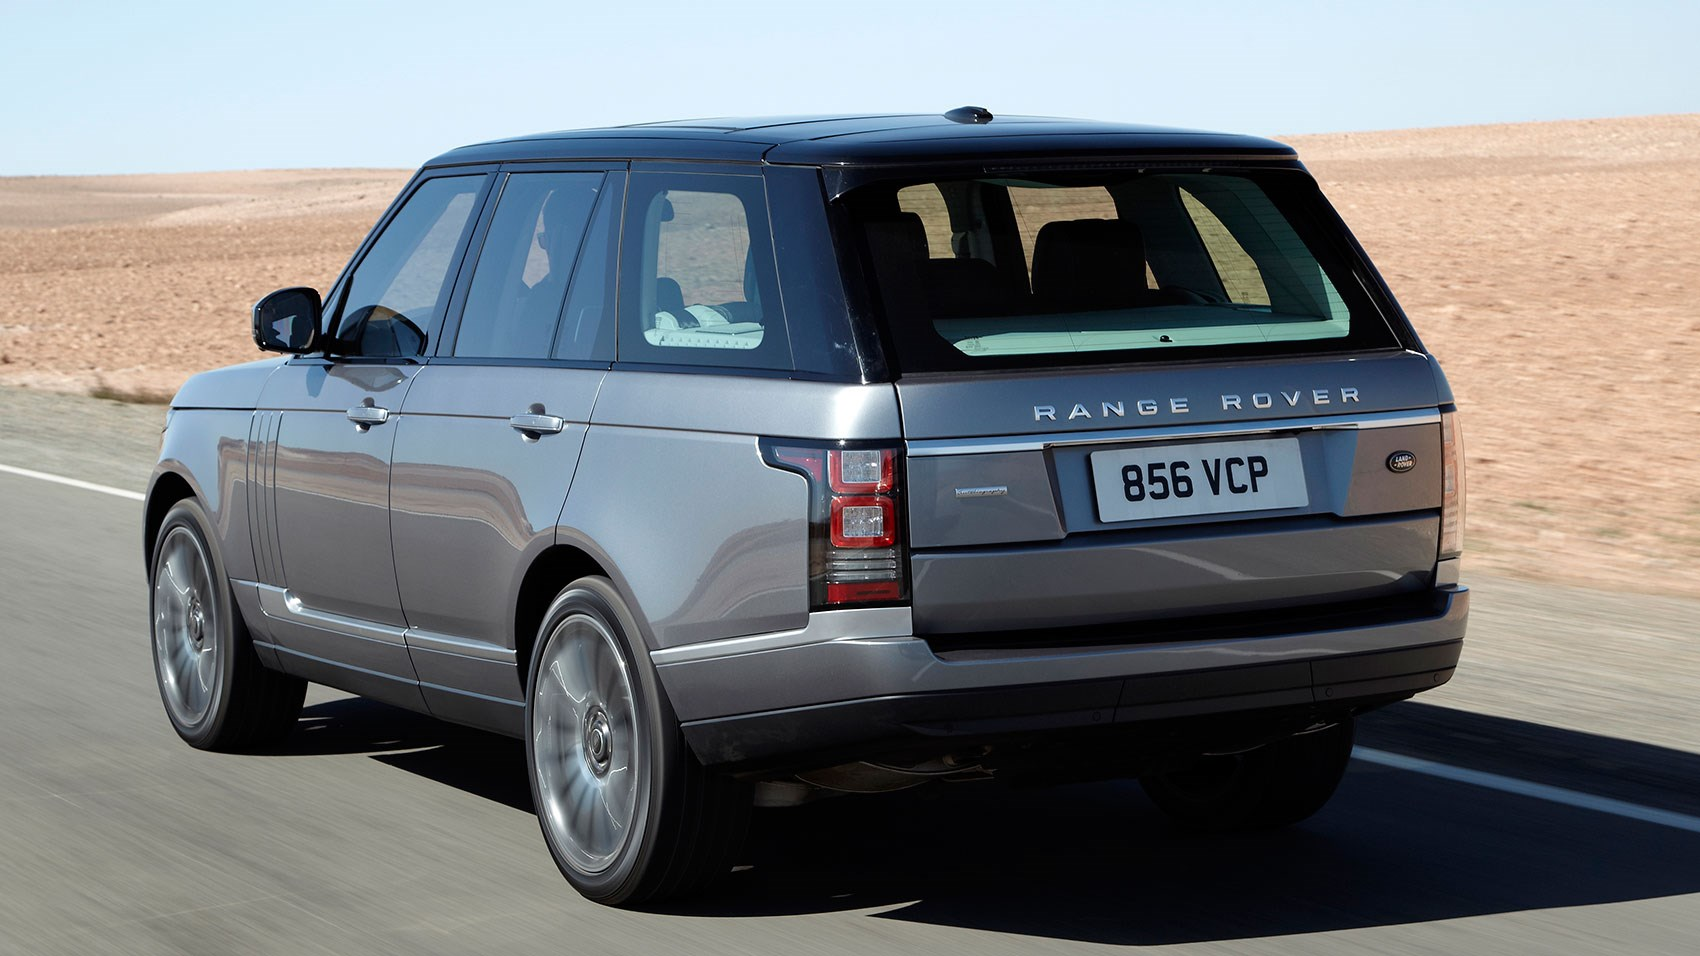 Range Rover 50 V8 Supercharged Autobiography 2015 Review Car 2001 Engine Diagram And Sport Close In Looks